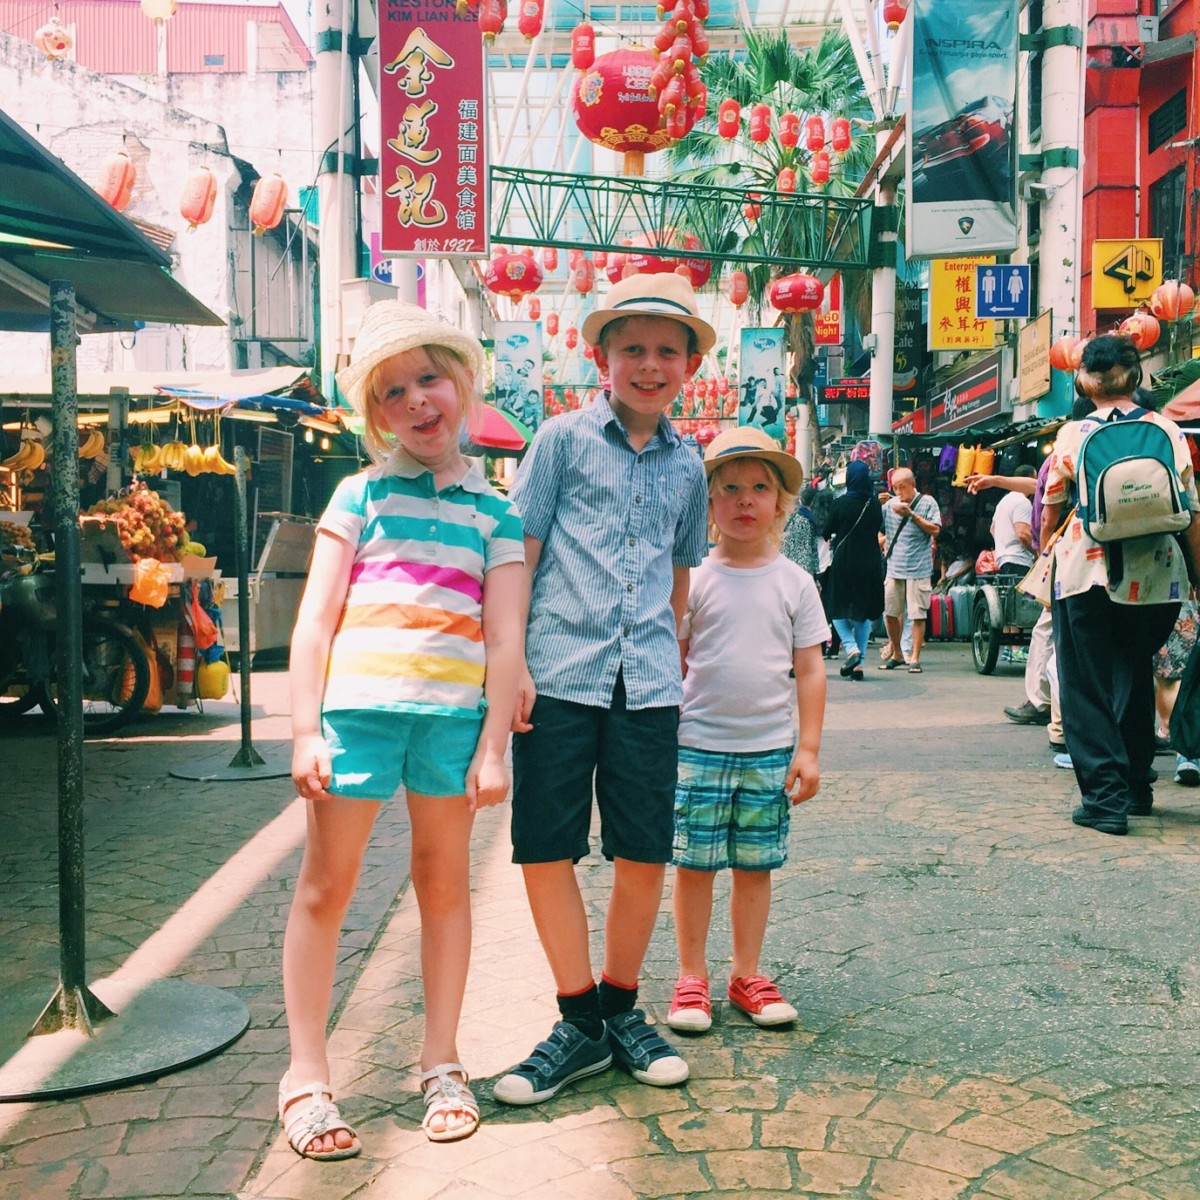 China Town, Petaling Street - Kuala Lumpur - Top 10 things to do in Kuala Lumpur with kids - copyright: www.globalmousetravels.com